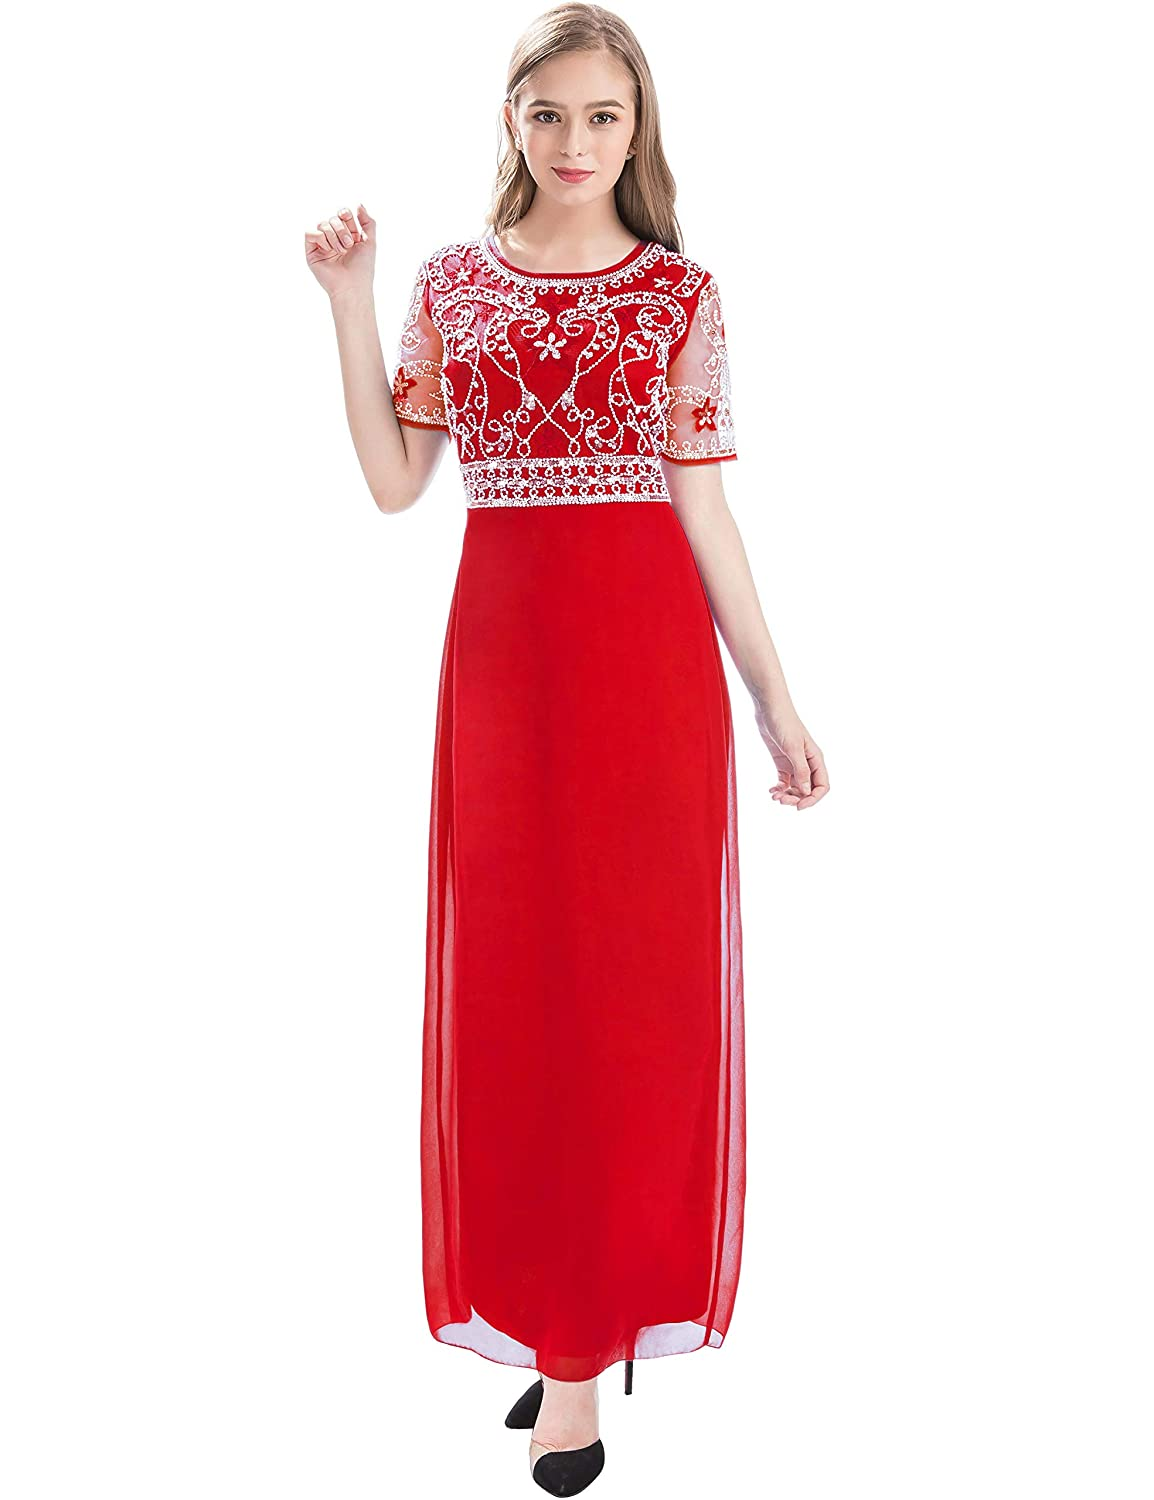 Vintage Christmas Gift Ideas for Women MANER Women Chiffon Beaded Embroidered Sequin Long Gowns Prom Evening Bridesmaid Dress $62.95 AT vintagedancer.com